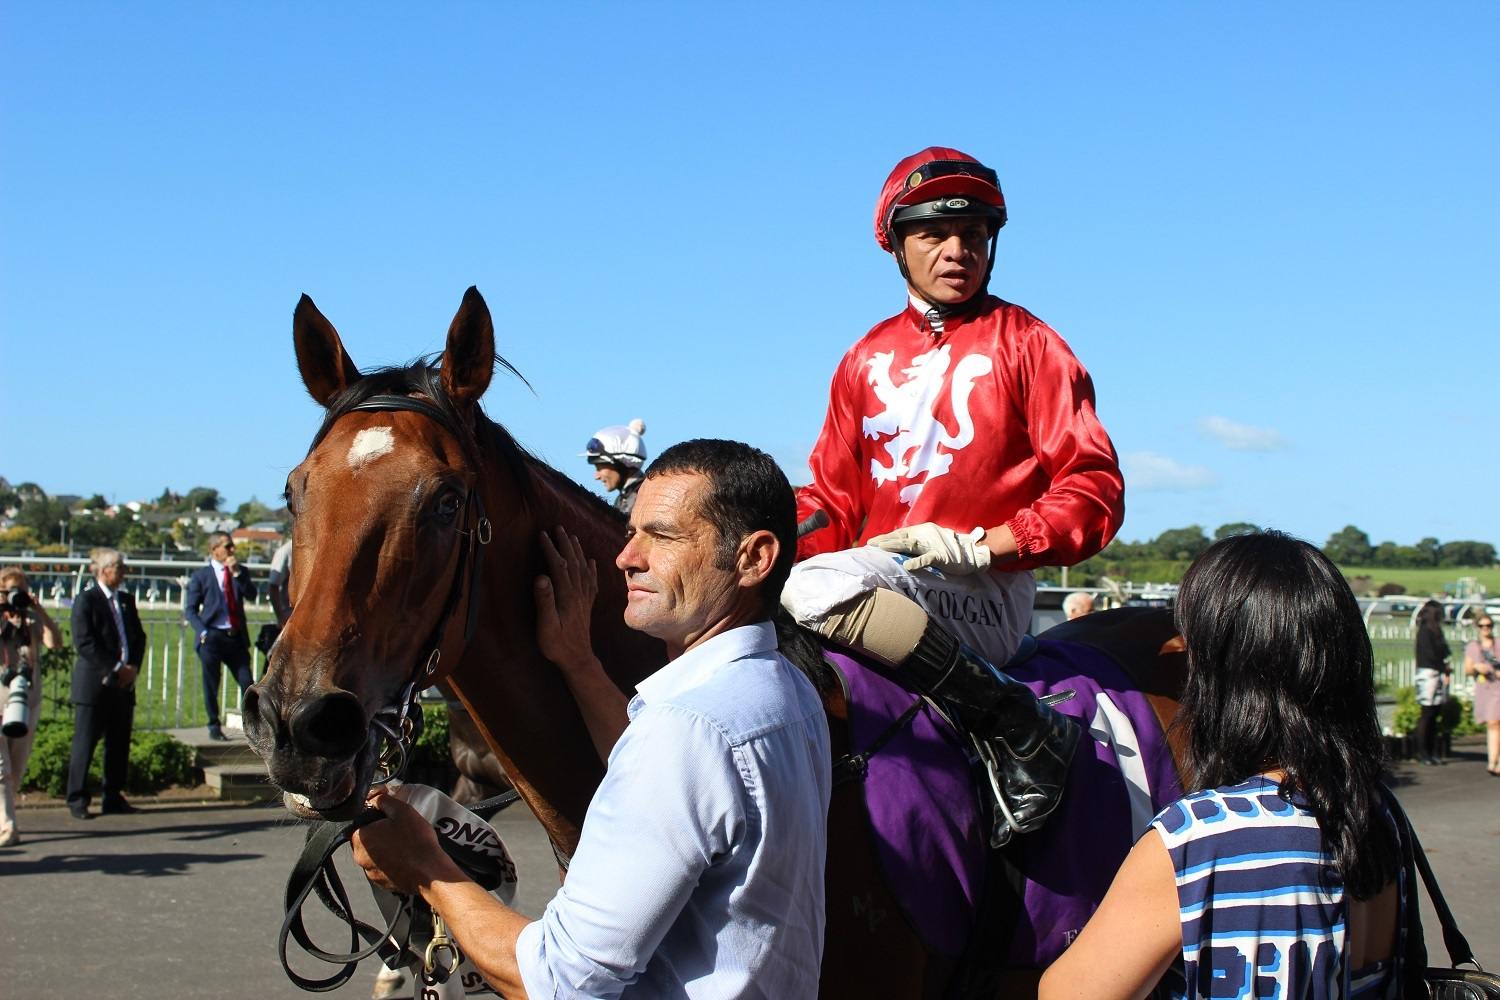 VOLKSTOK'N'BARREL AIMED AT 5TH GROUP 1 WIN AND TAVIDREAM HAS HIS FIRST HONG KONG START ON SUNDAY OCTOBER 22ND